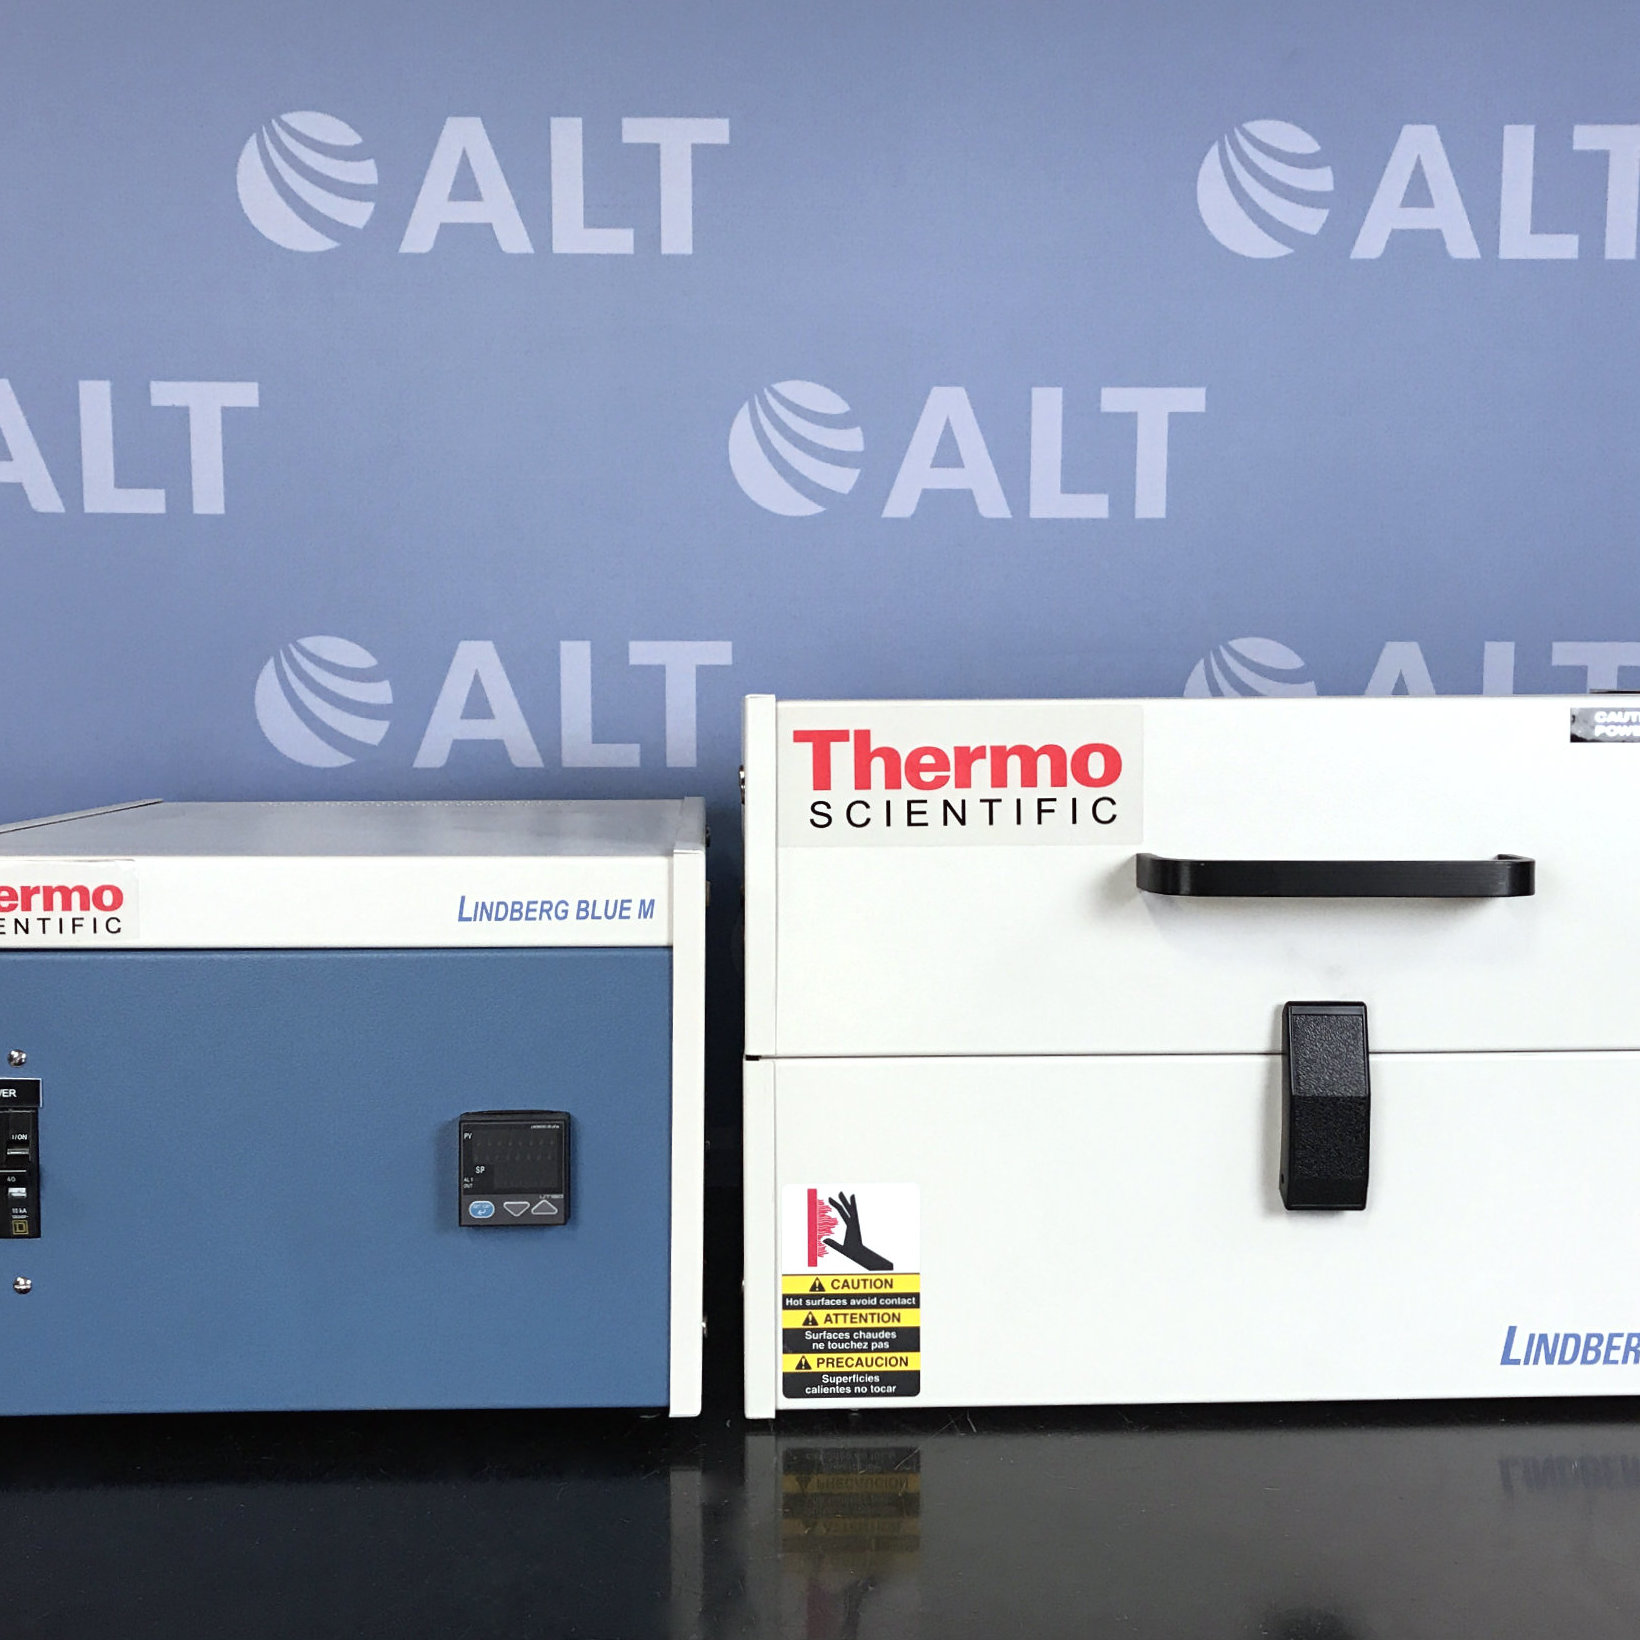 Thermo Scientific Lindberg/Blue M 1200C Split-Hinge Tube Furnace Model HTF55122A with Control Console Model CC58114COMA-1 Image